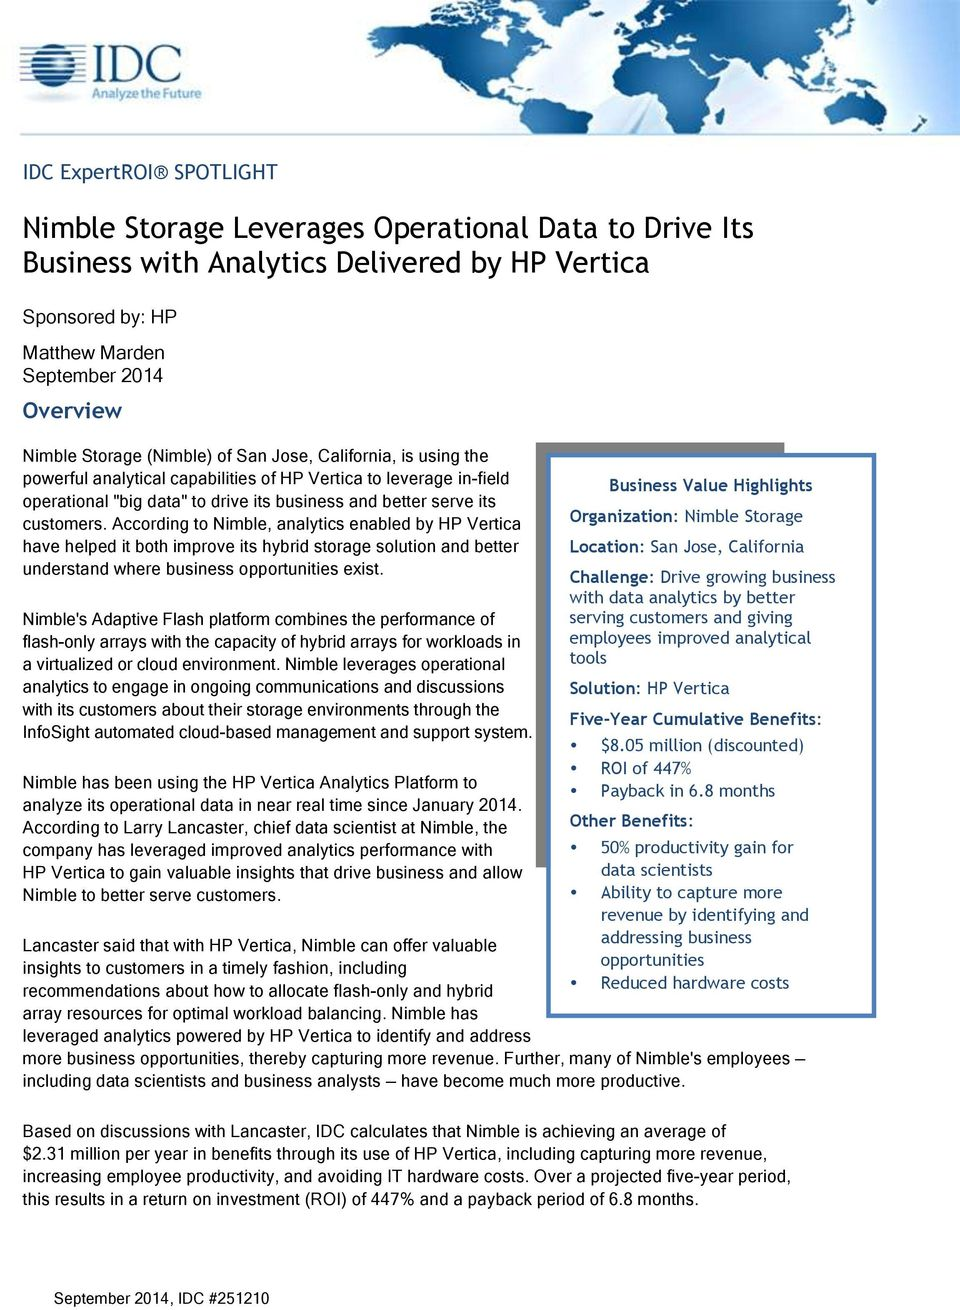 According to Nimble, analytics enabled by HP Vertica have helped it both improve its hybrid storage solution and better understand where business opportunities exist.